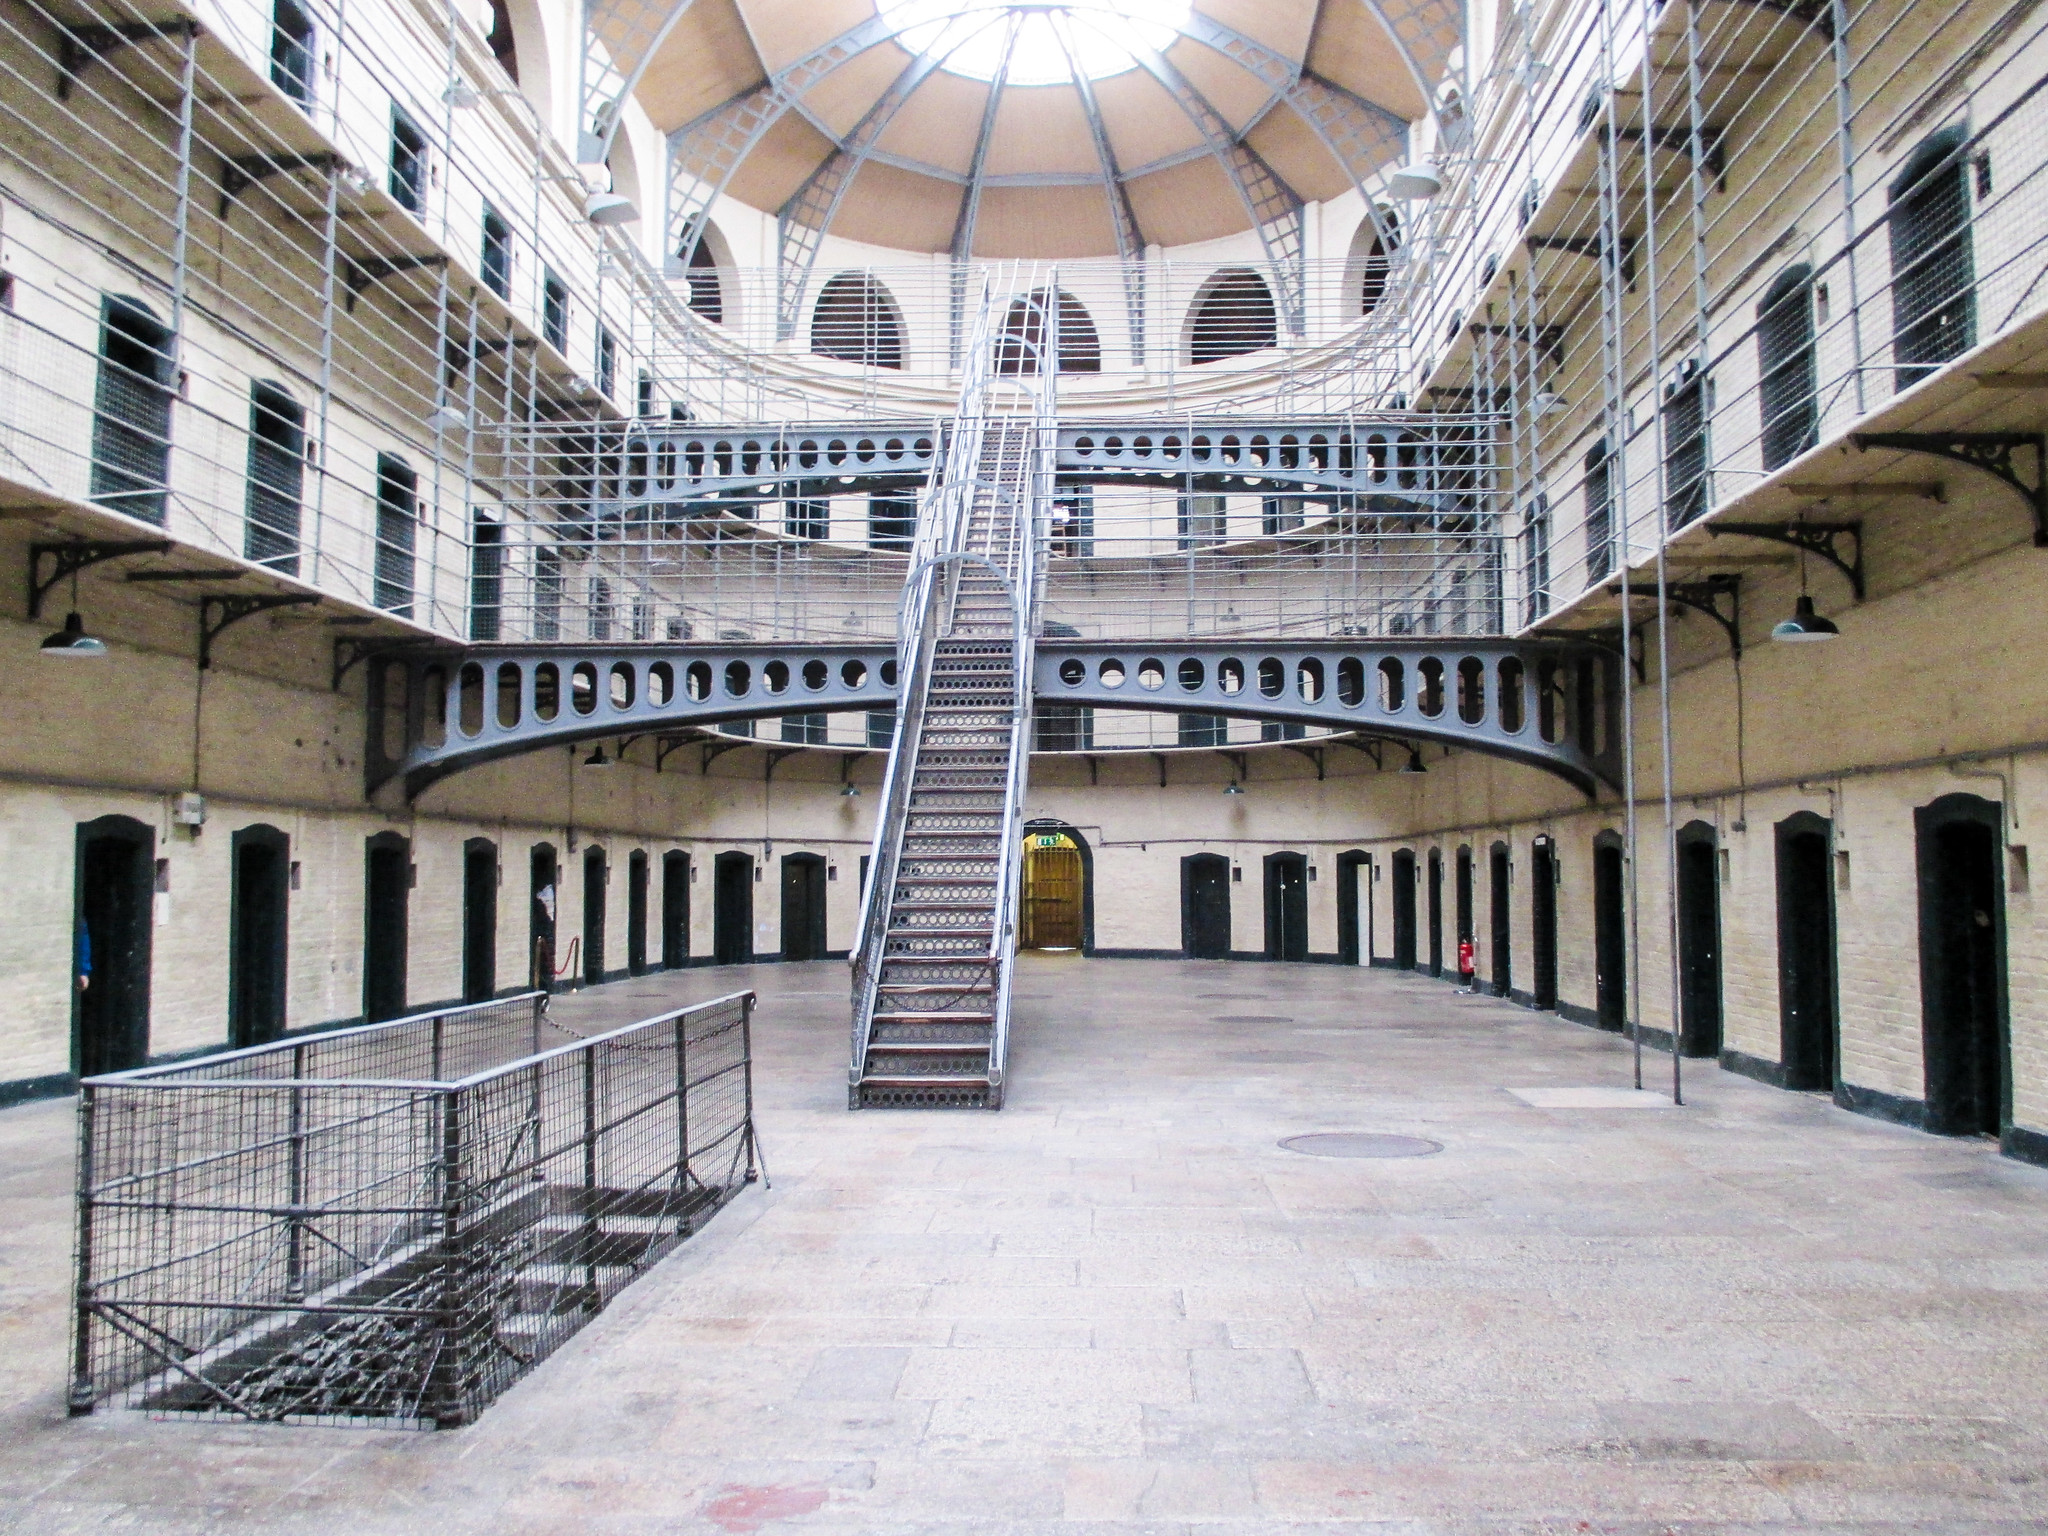 solo travel in dublin means seeing museums on your own such as the gaol